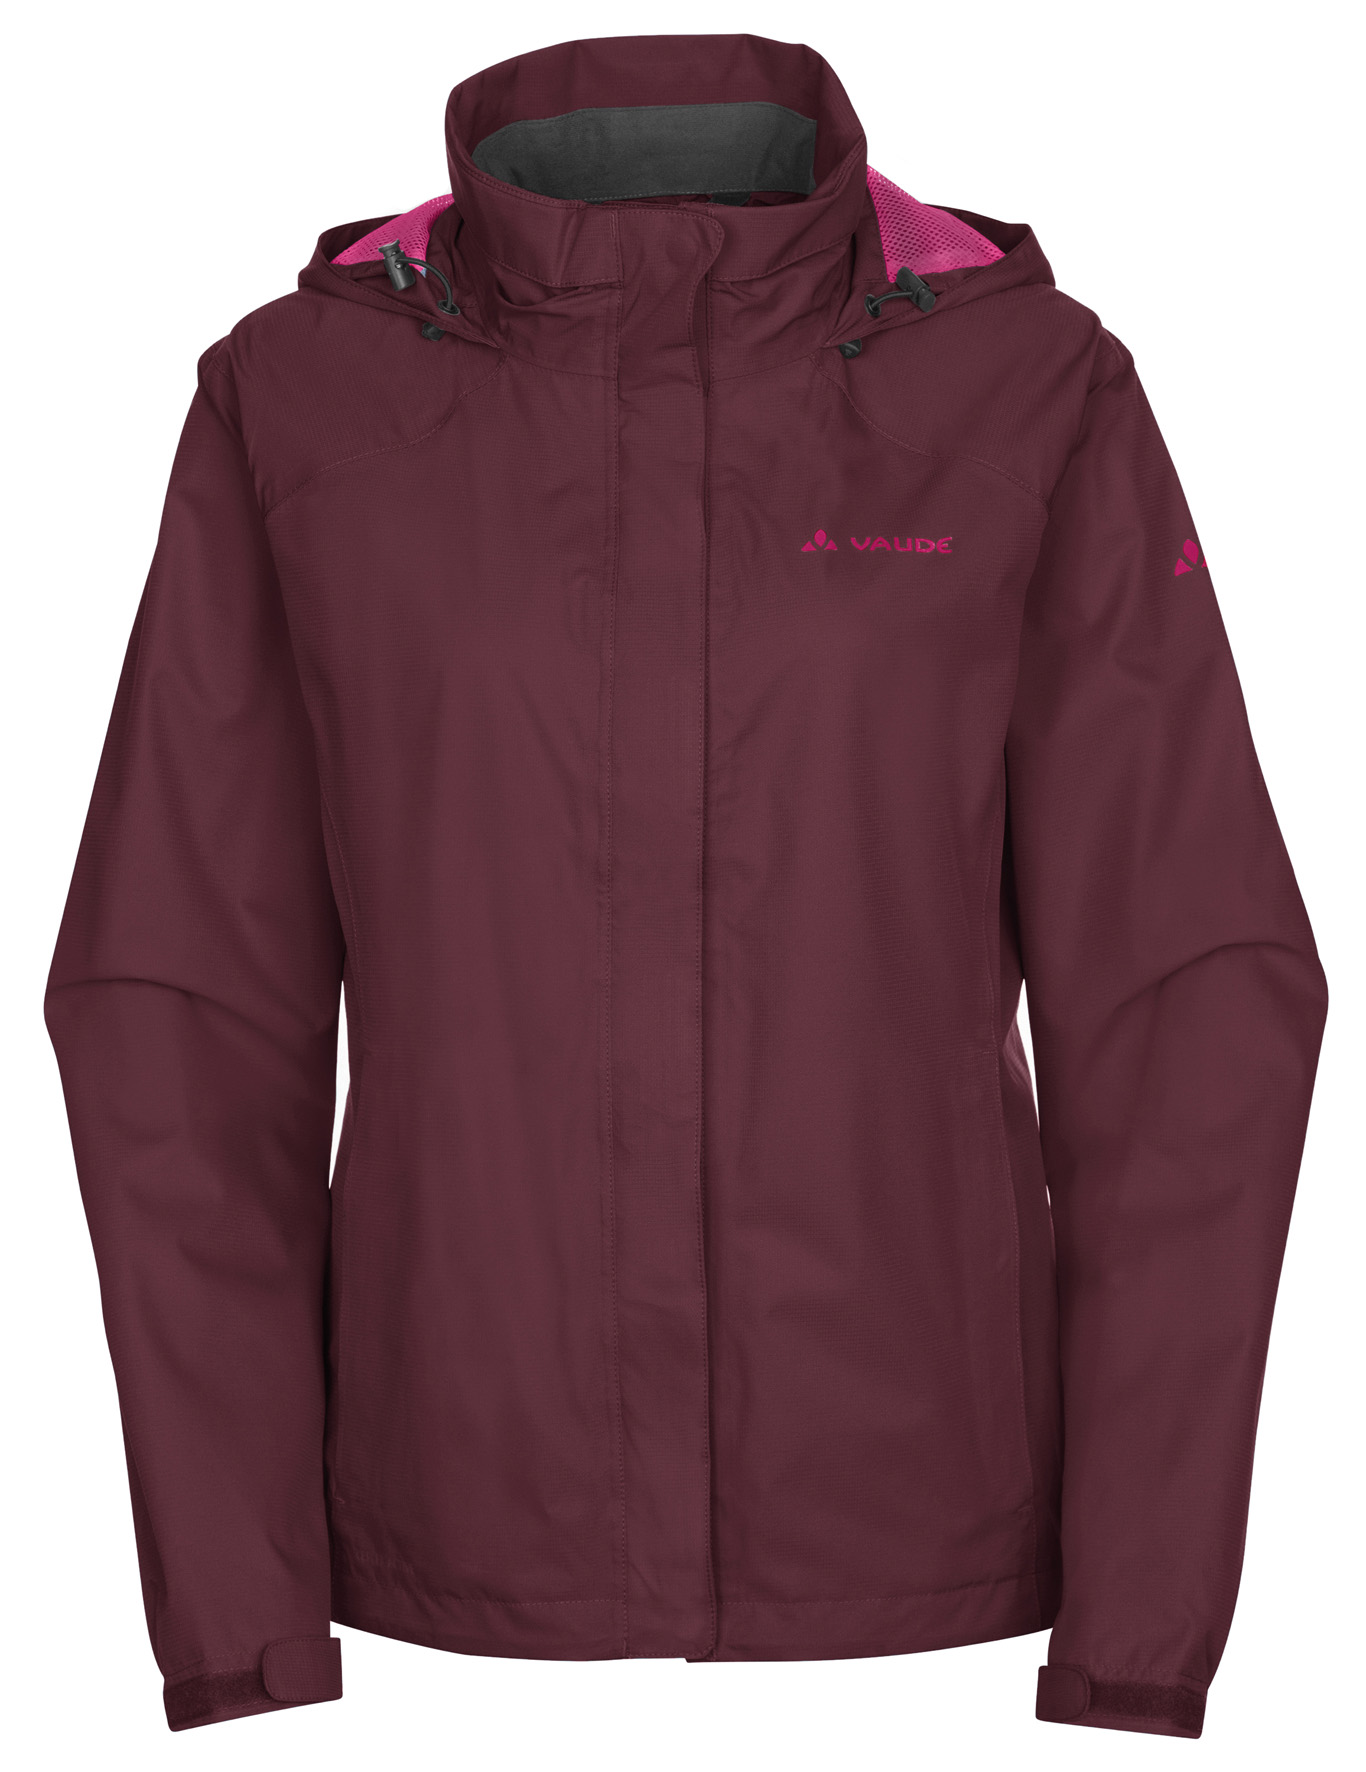 VAUDE Women´s Escape Bike Light Jacket claret red Größe 36 - schneider-sports